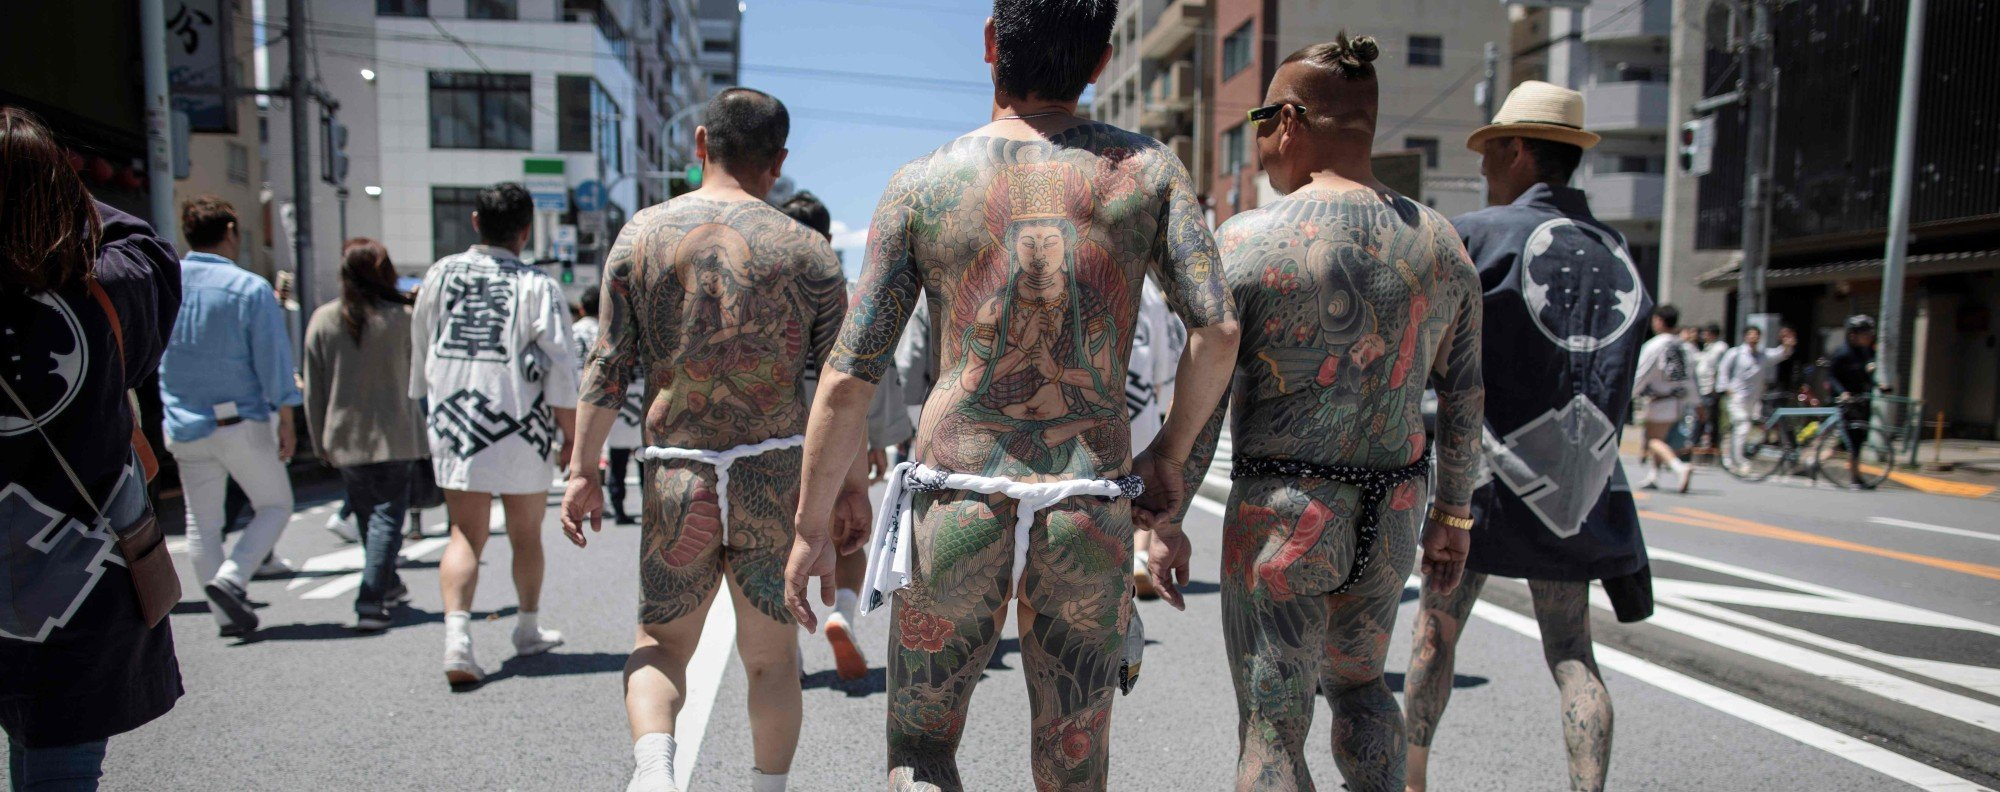 In Japan Tattoos Are Associated With Yakuza Photo Afp